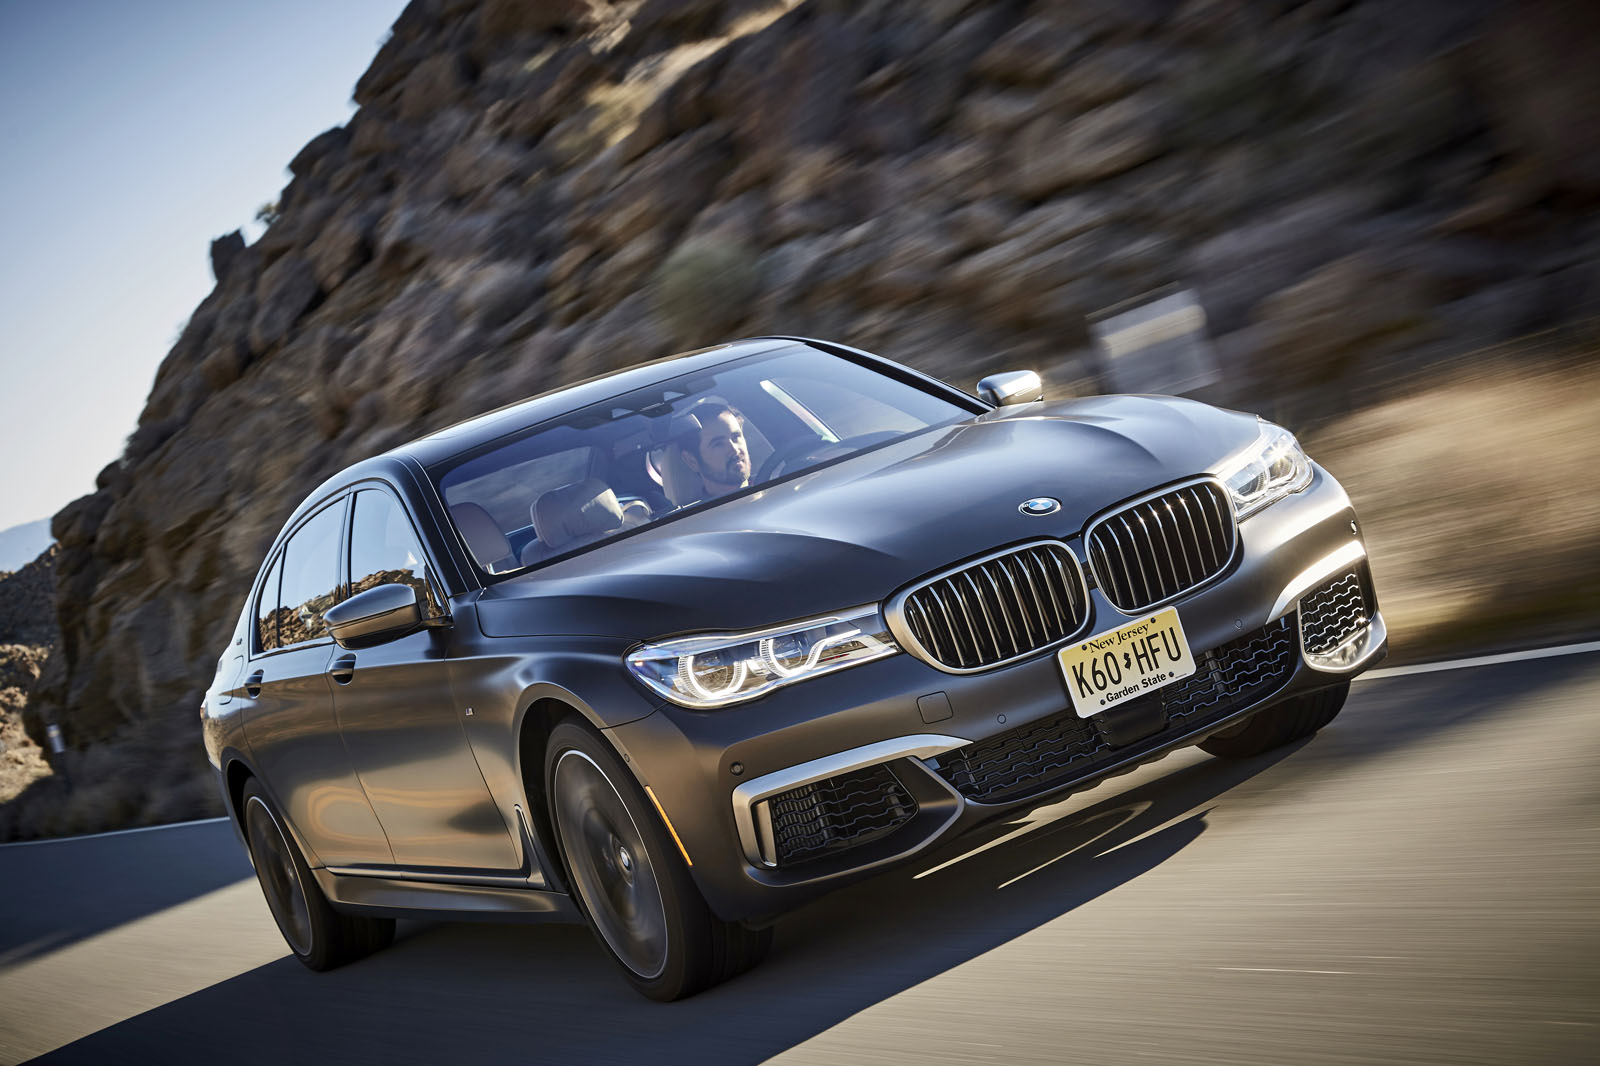 bmw shows off new m760li xdrive to the rest of us 200 images carscoops. Black Bedroom Furniture Sets. Home Design Ideas